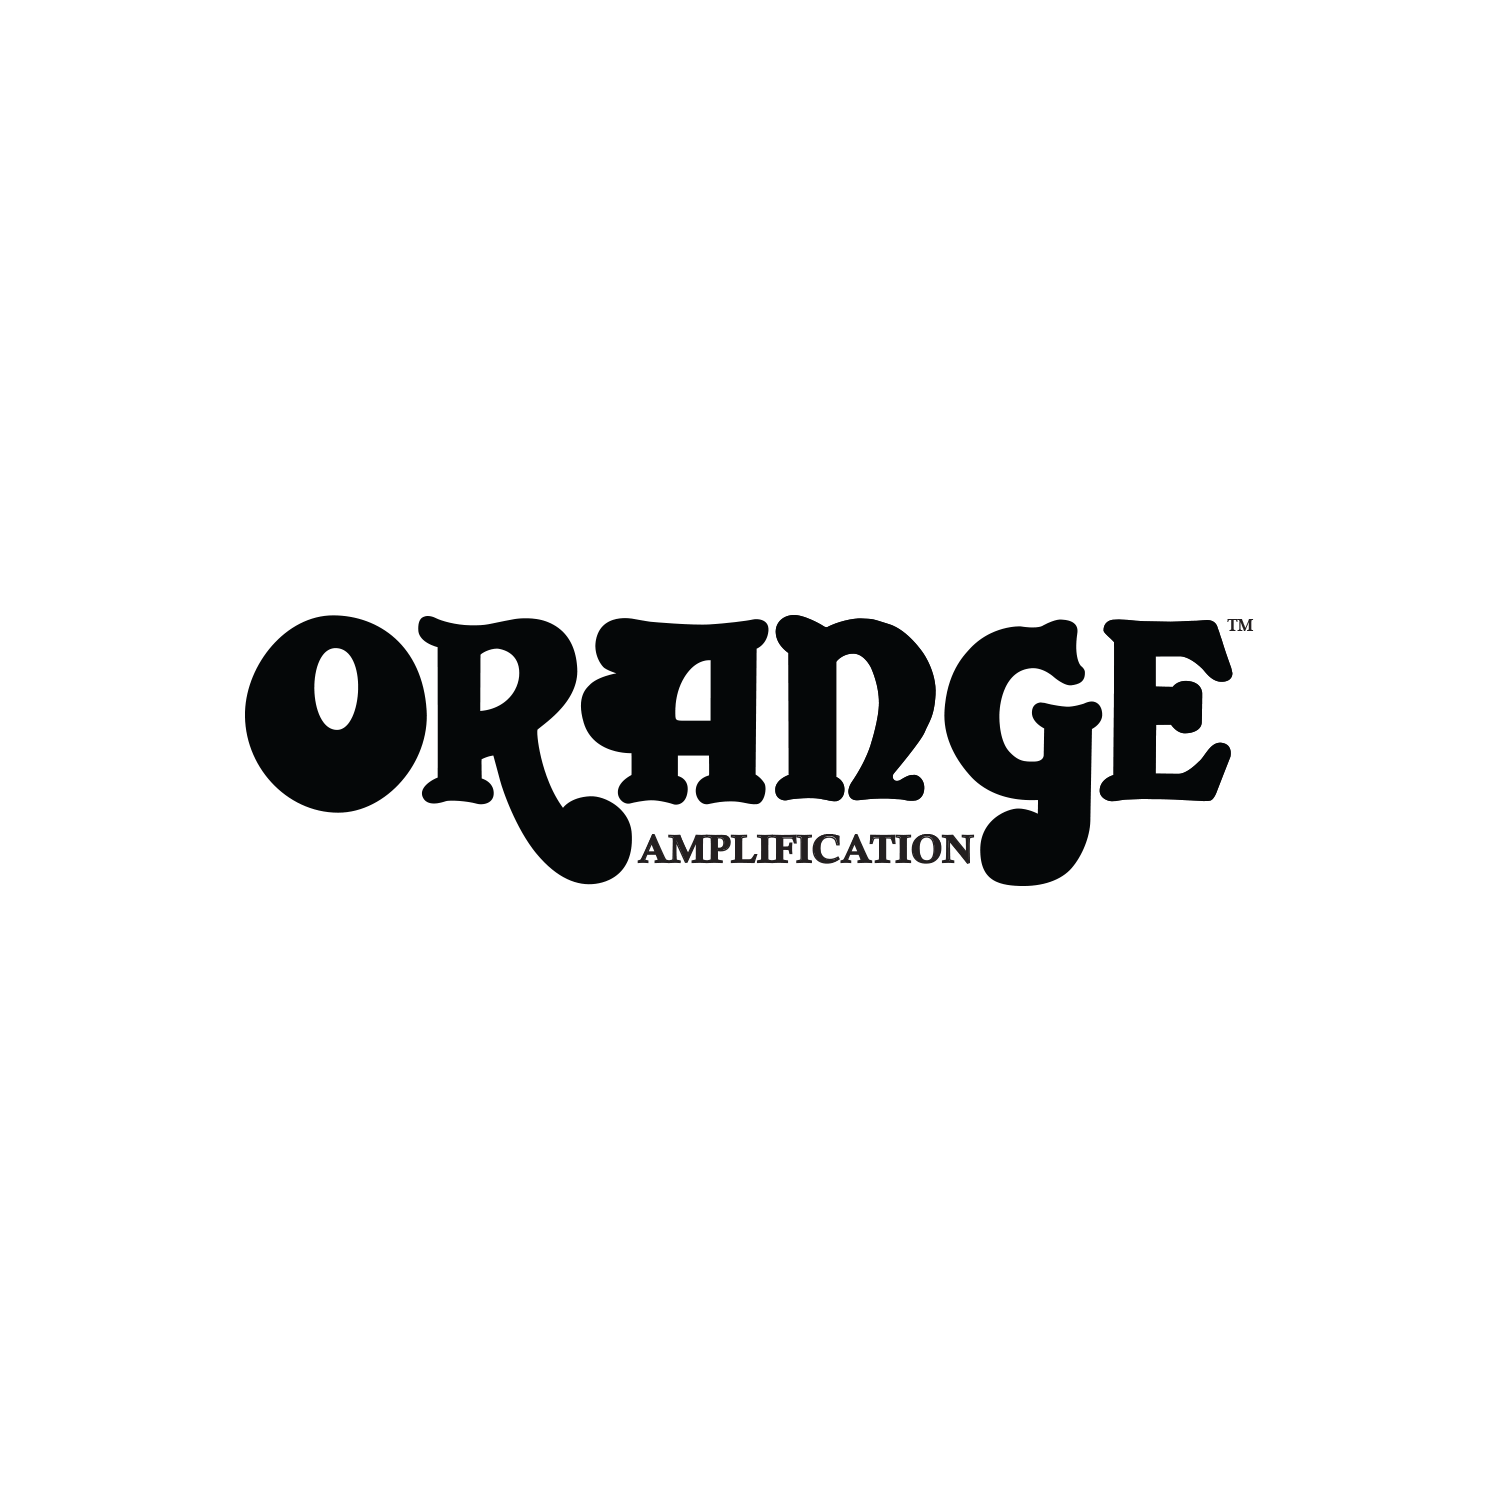 Event Sponsor: Orange Amplification